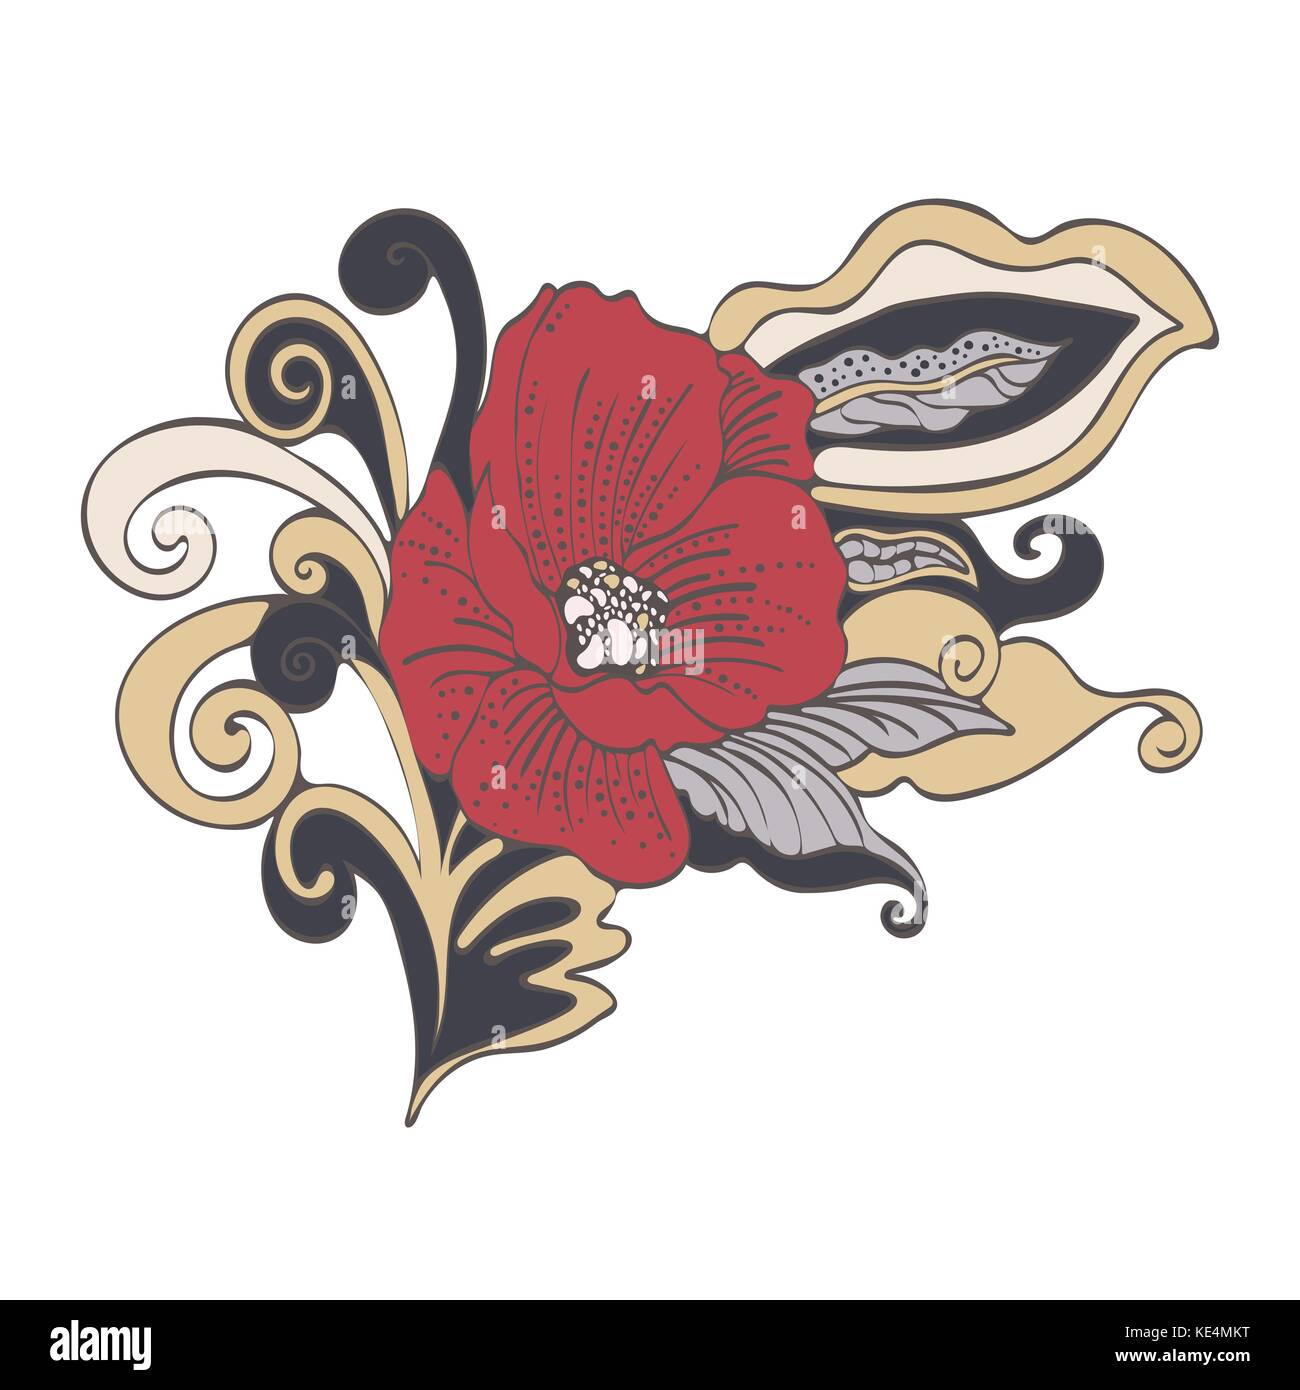 Abstract flower cartoon vector hand drawn red bud poppy flower abstract flower cartoon vector hand drawn red bud poppy flower petals stem leaves and curls exquisite unusual color ornament isolated on white mightylinksfo